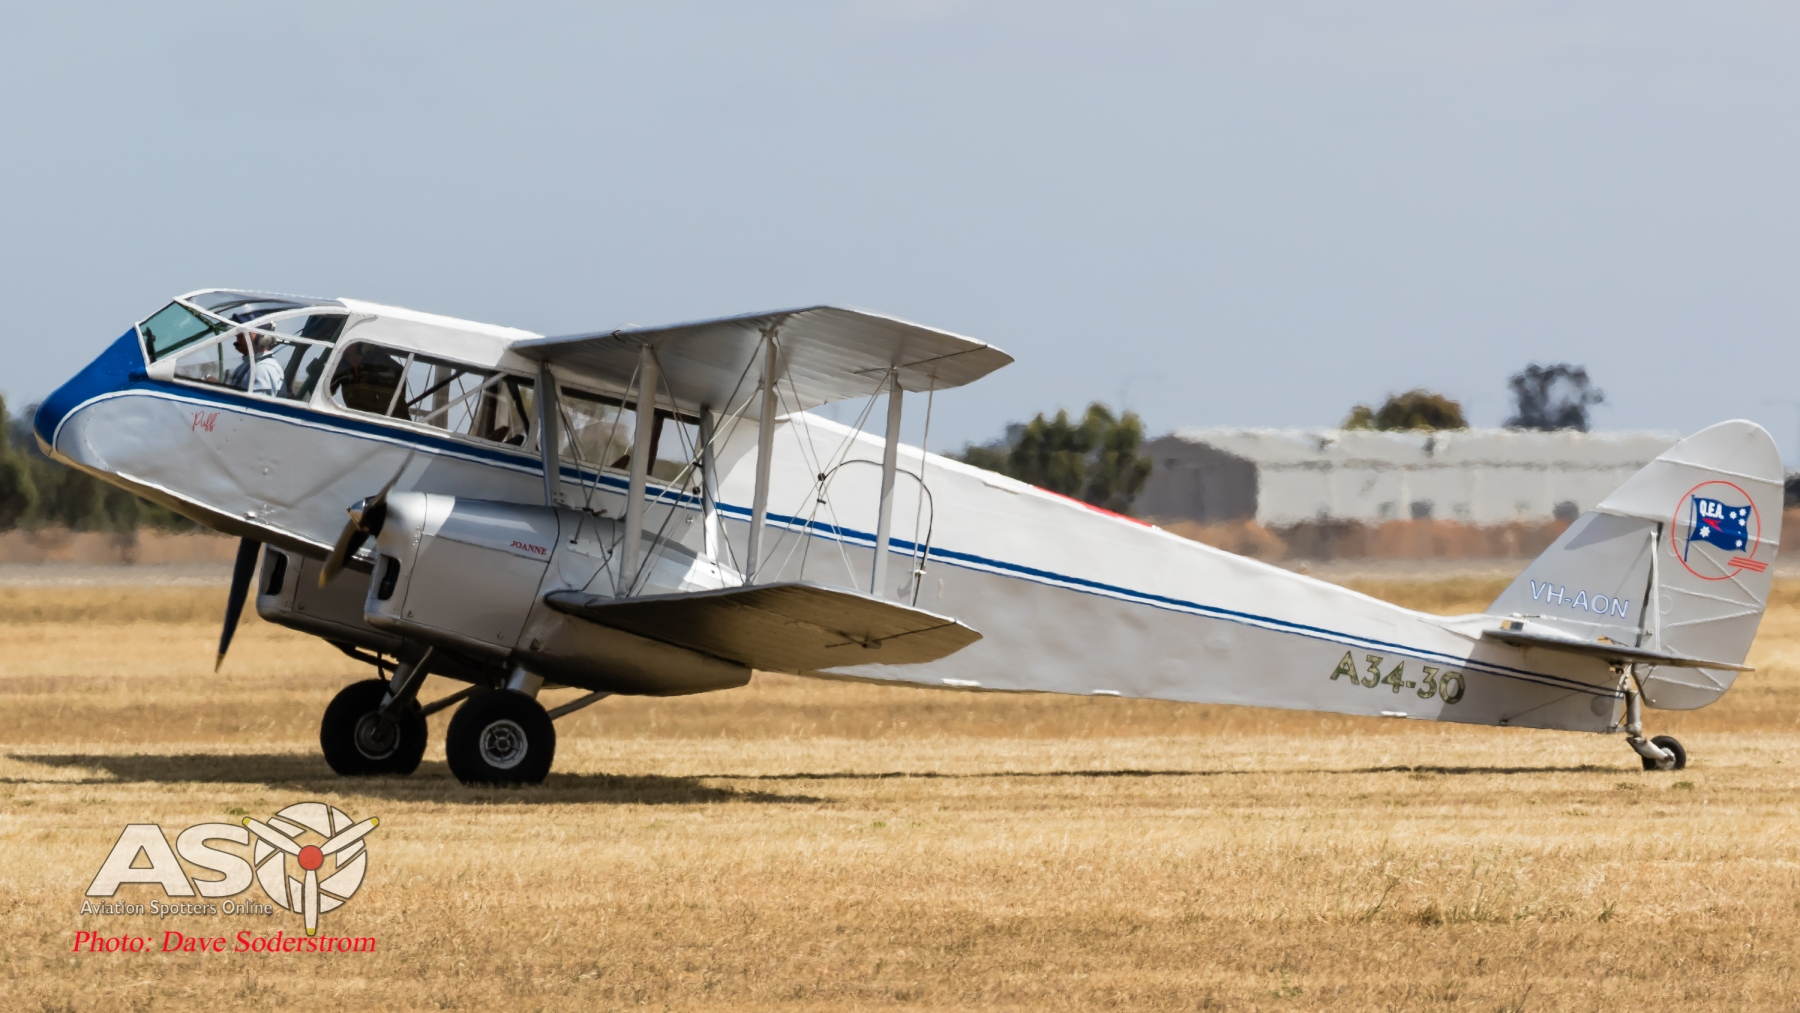 ASO-EDN-Airshow-2019-110-1-of-1